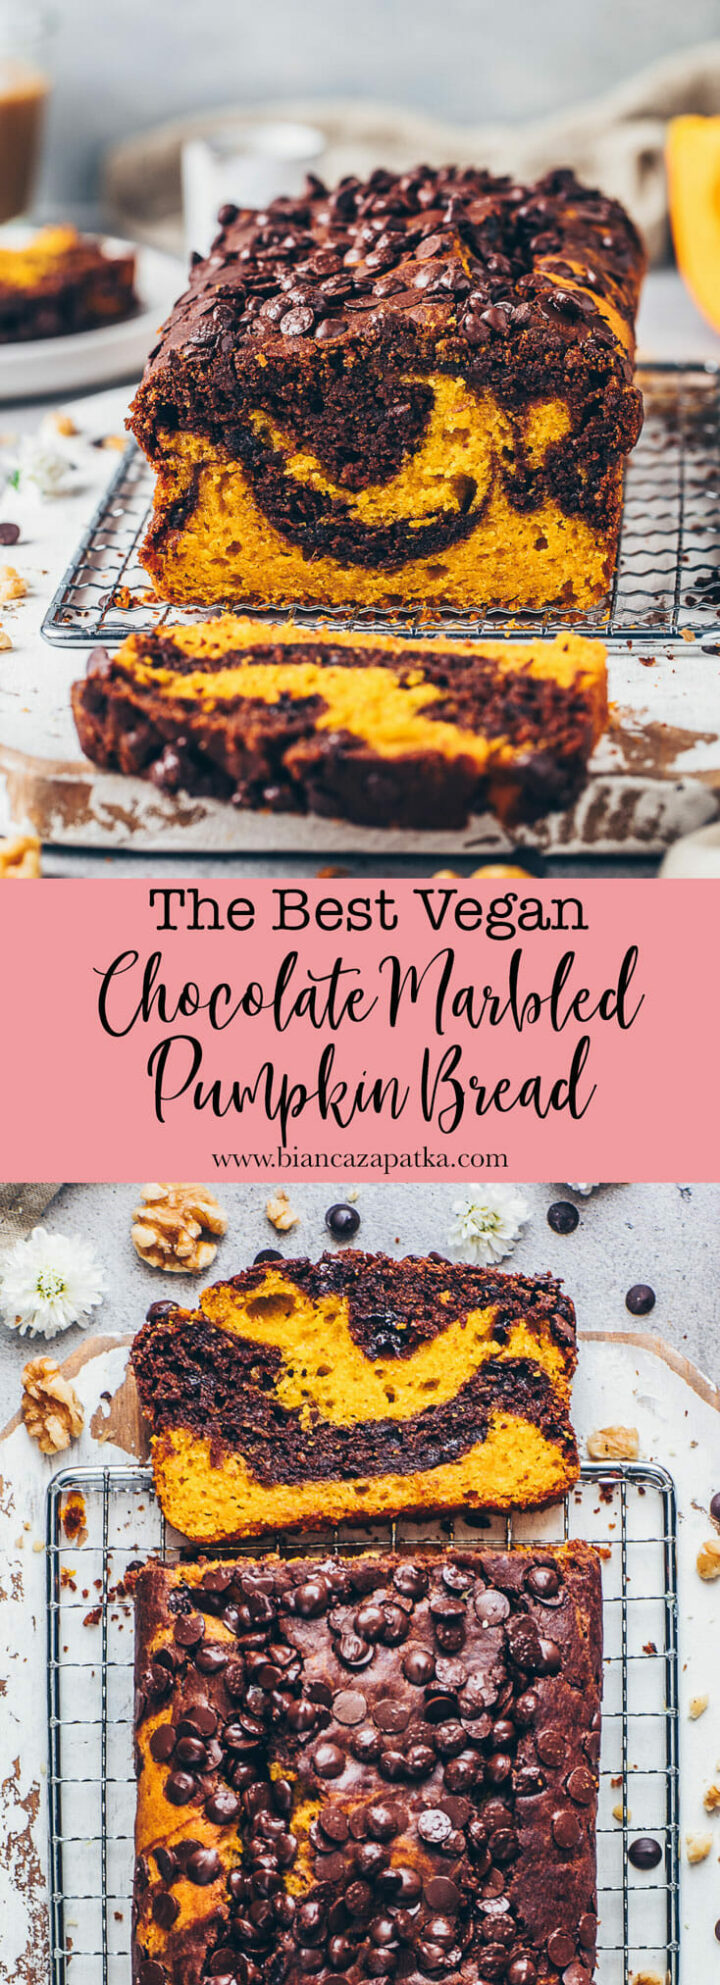 Marbled Pumpkin Chocolate Bread (Chocolate Chip Loaf Cake)